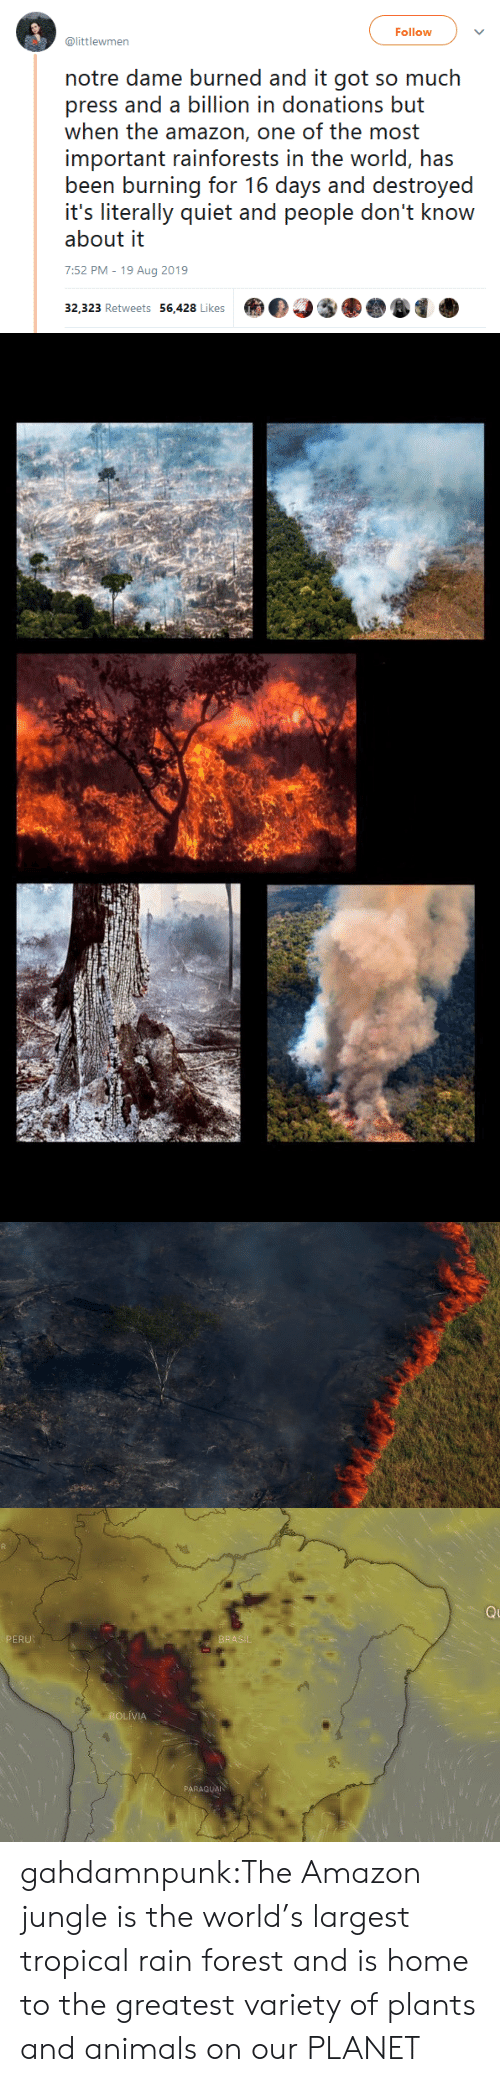 burned: Follow  @littlewmen  notre dame burned and it got so much  press and a billion in donations but  when the amazon, one of the most  important rainforests in the world, has  been burning for 16 days and destroyed  it's literally quiet and people don't know  about it  7:52 PM - 19 Aug 2019  32,323 Retweets 56,428 Likes   Q  PERU  BRASIL  BOLIVIA  PARAGUAN gahdamnpunk:The Amazon jungle is the world's largest tropical rain forest and is home to the greatest variety of plants and animals on our PLANET